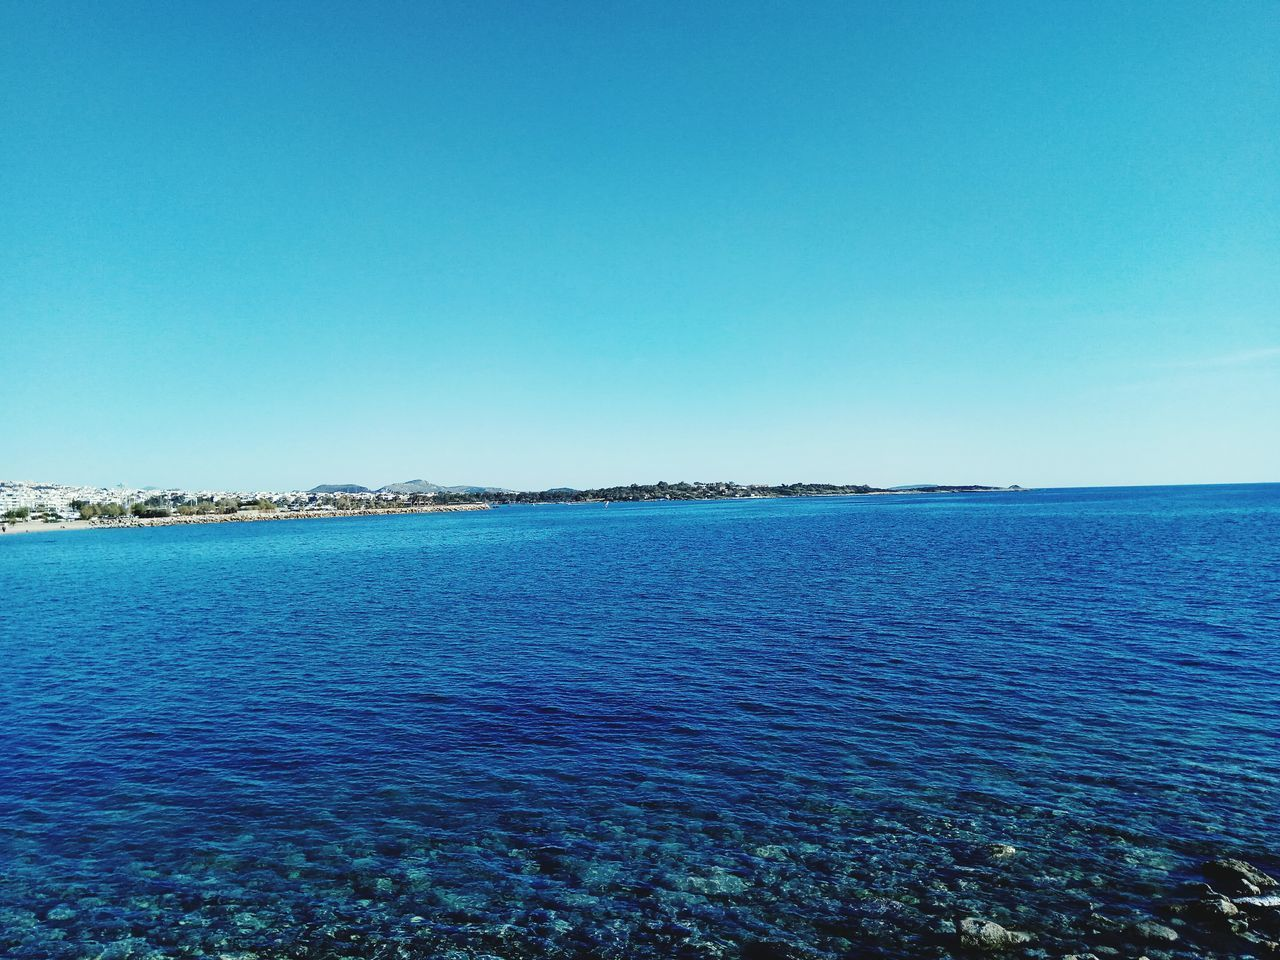 Blue Clear Sky Sea Tranquility Scenics Sky Day Tranquil Scene Water Nature Outdoors No People Beauty In Nature Greece Memories Vacation Time Vacation Destination Greece Photos Travel Destinations Reflection Horizon Over Water